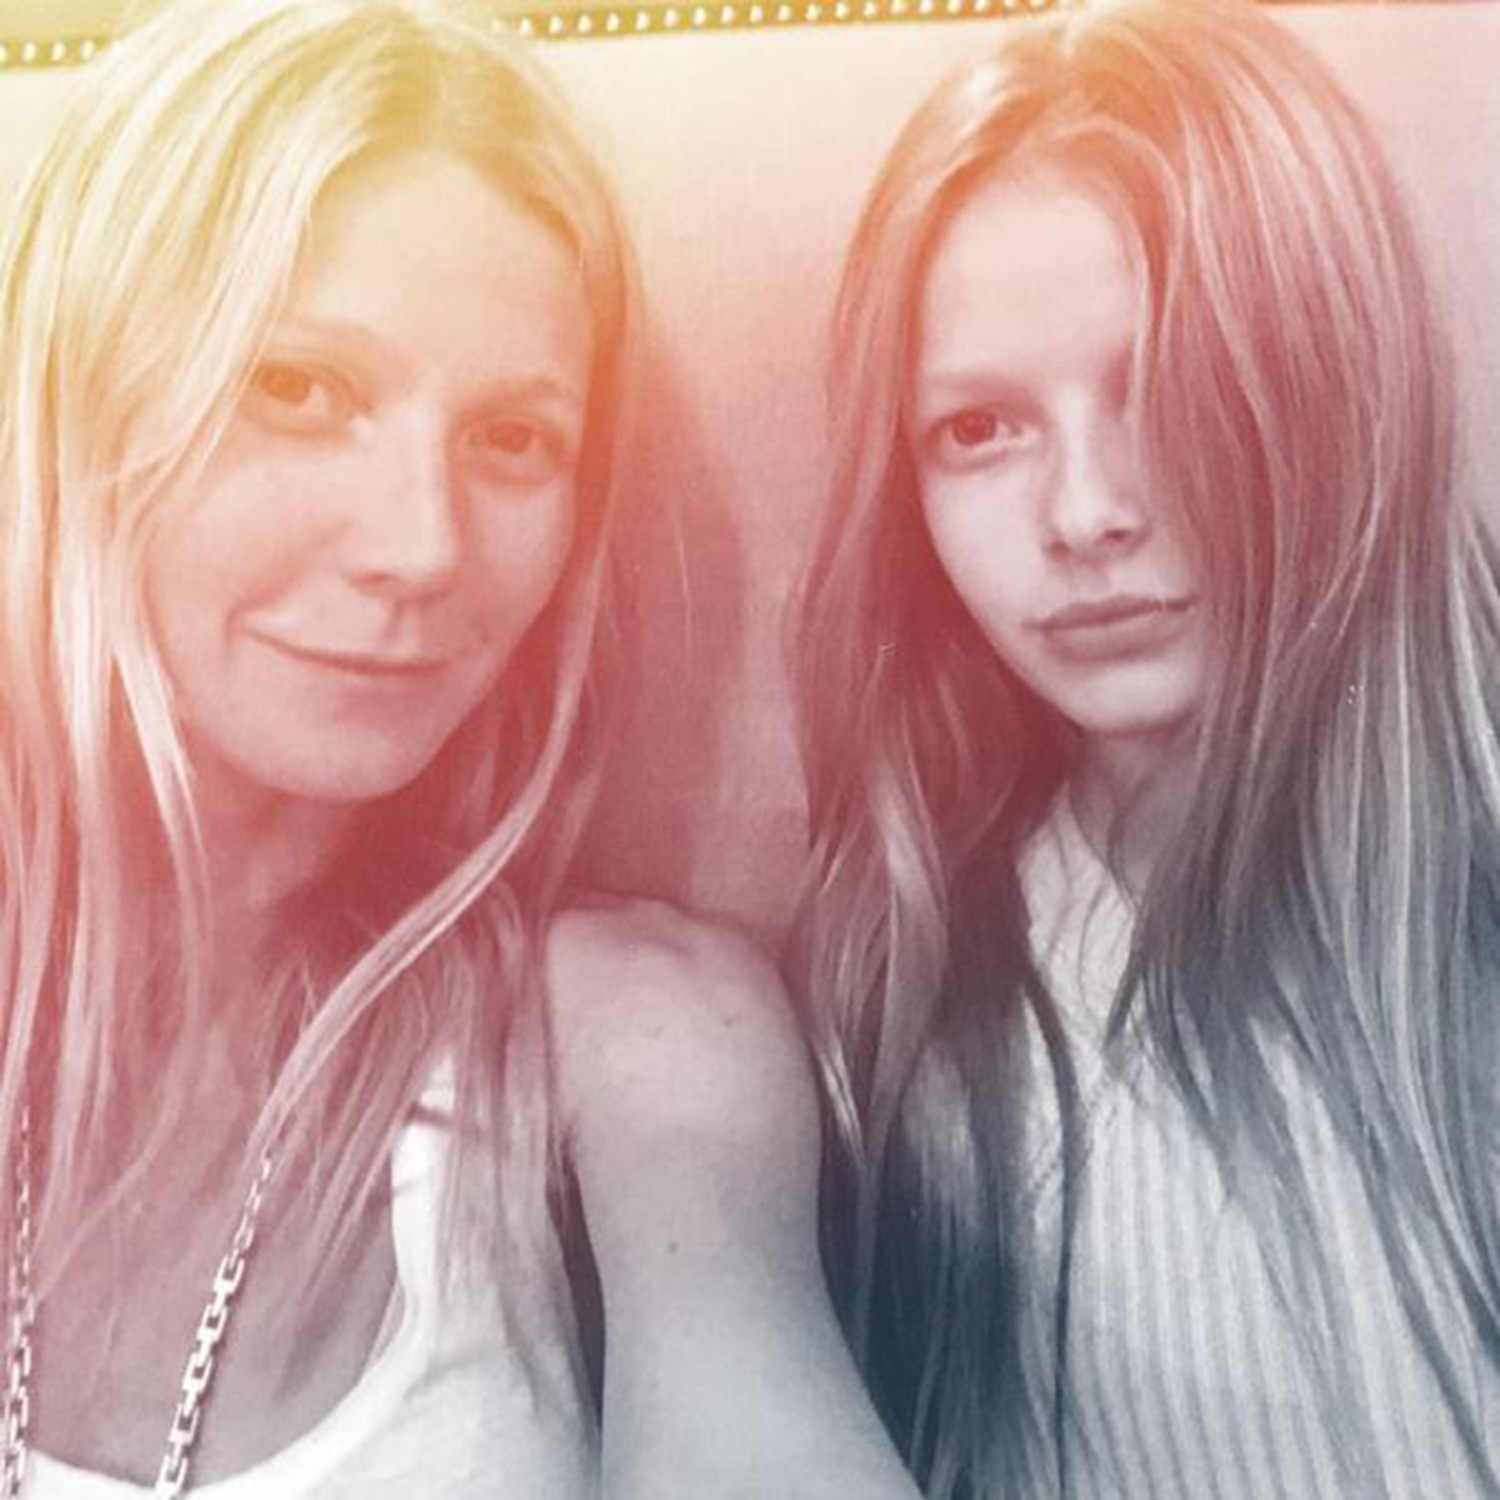 Gwyneth Paltrow ed Apple Sembrano Gemelle: Scatto su Instagram